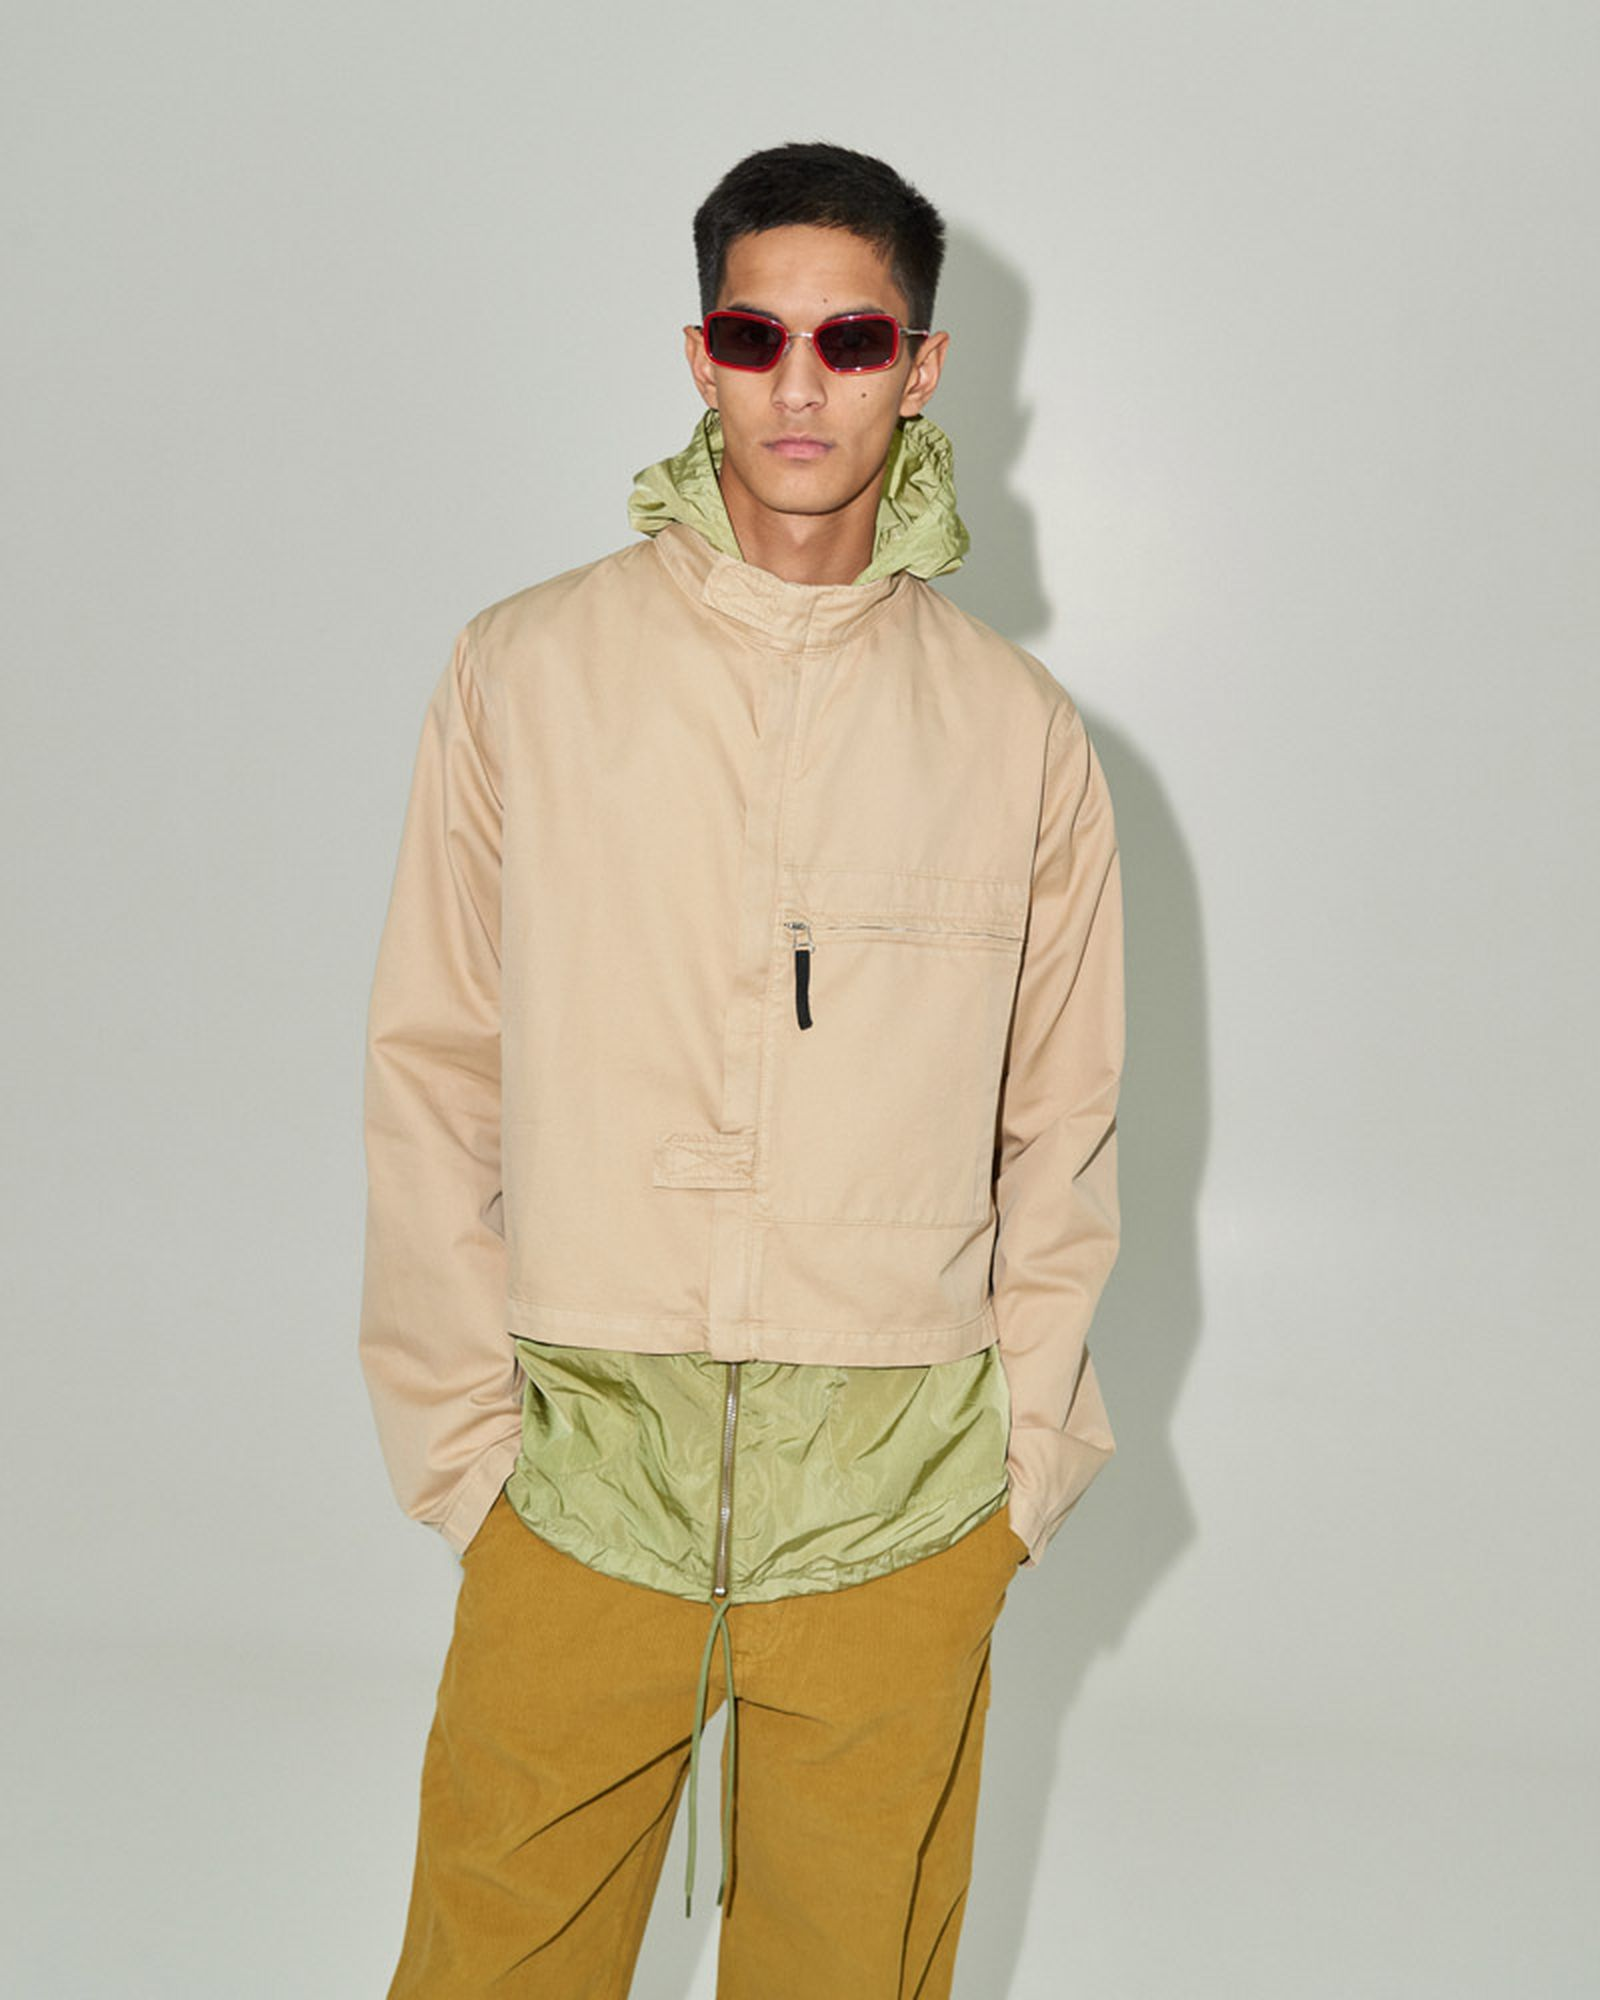 tres bien created notable house label three short seasons Tres Bien SS19 190201 007 Fall/Winter 2019 Spring/Summer 2019 fw19